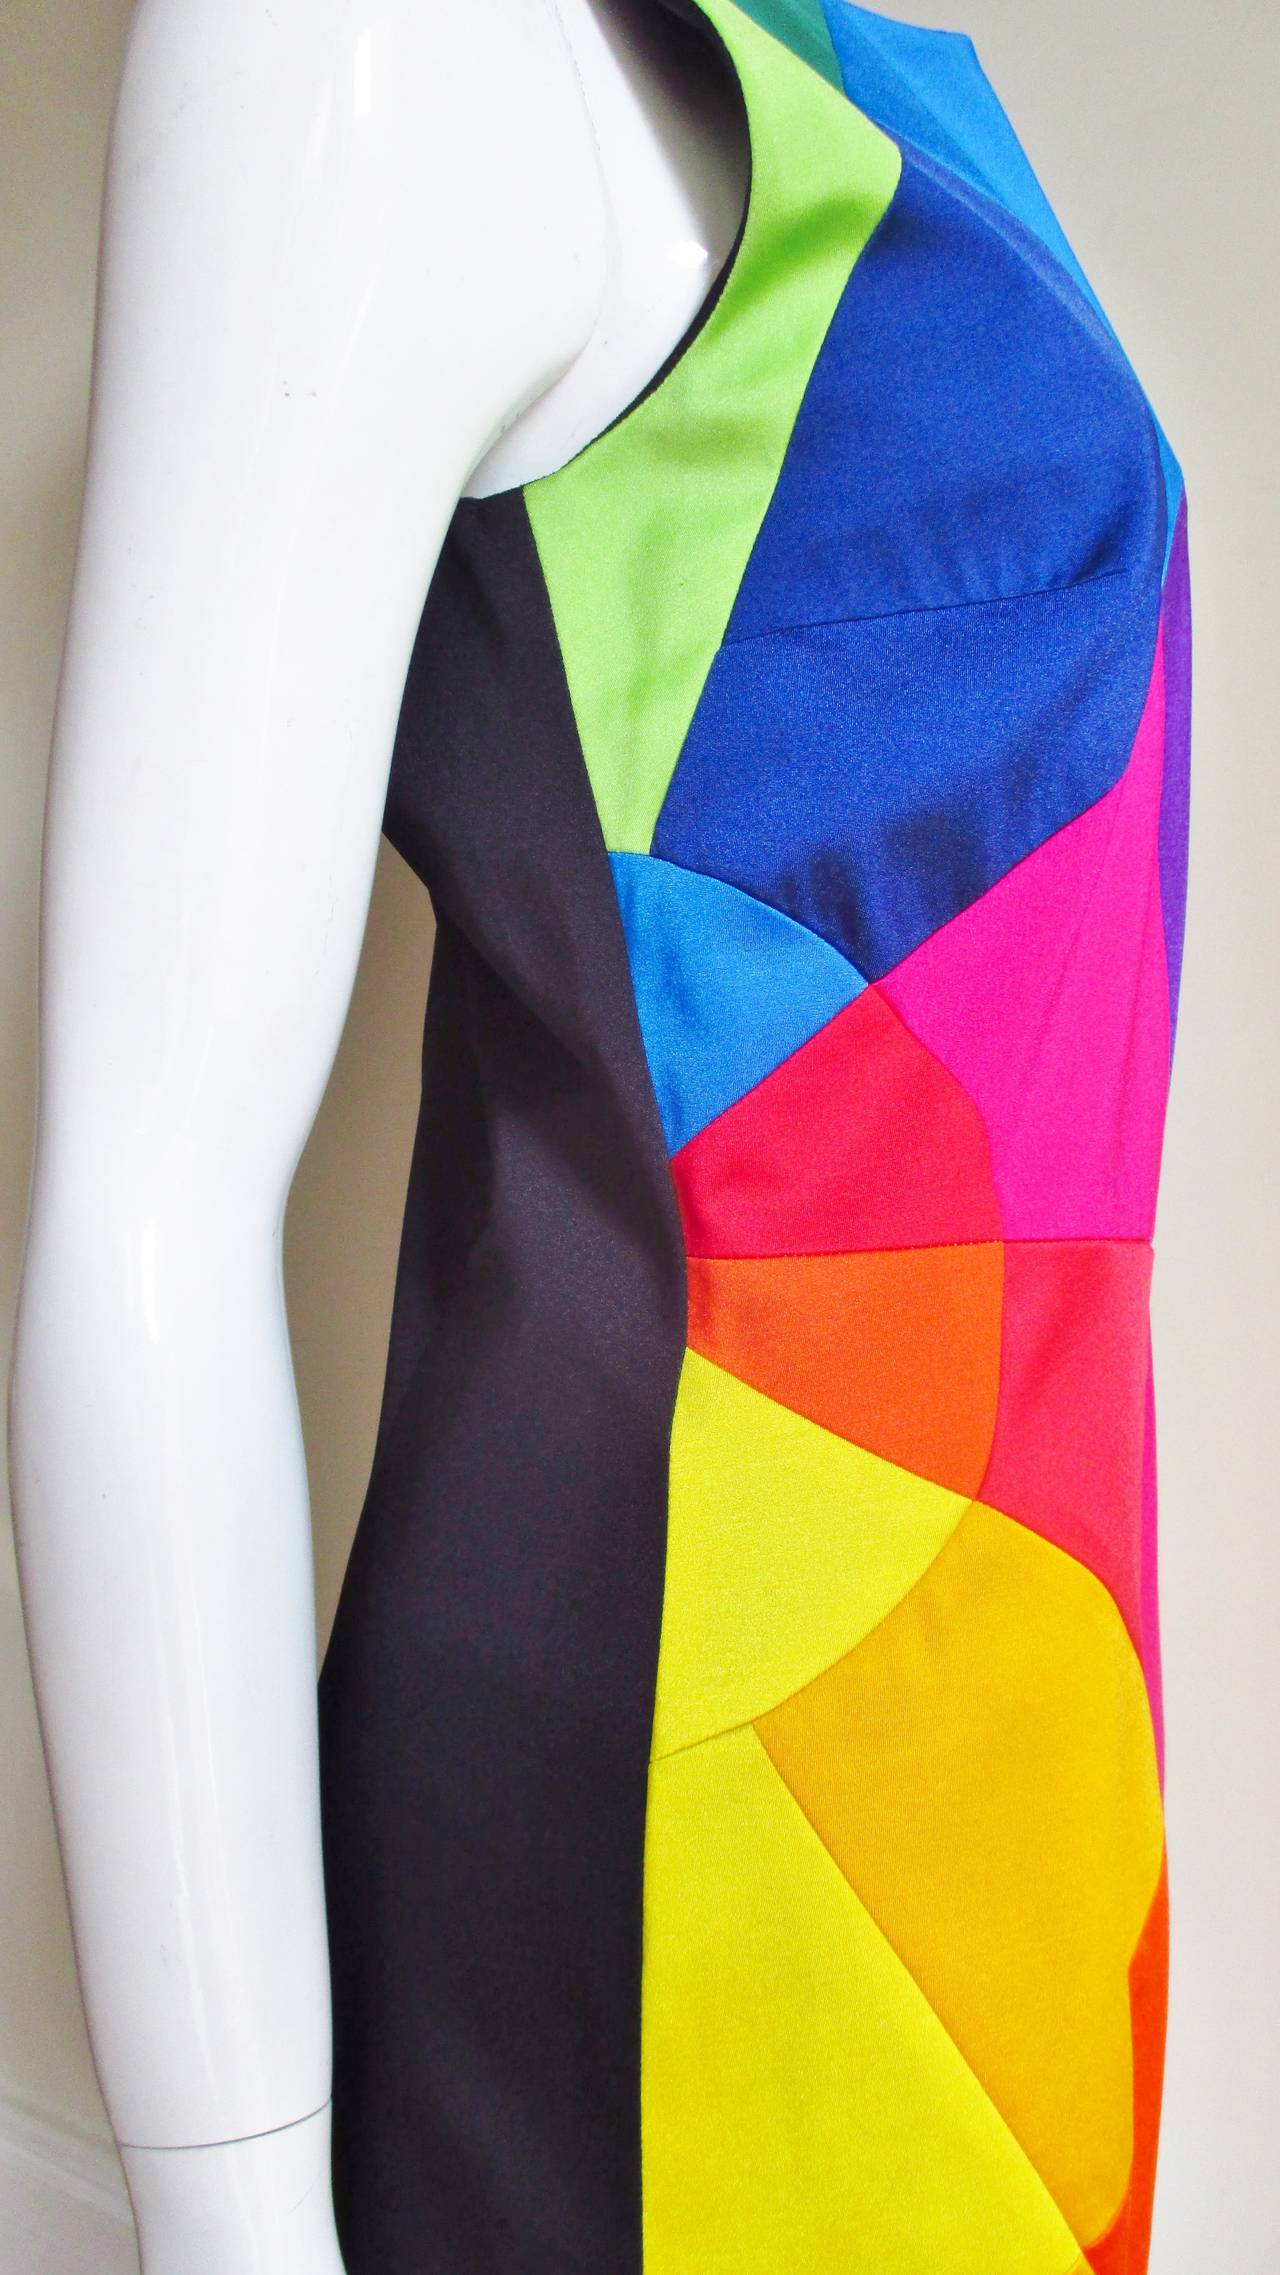 1990s Moschino Rainbow Color Block Dress 5